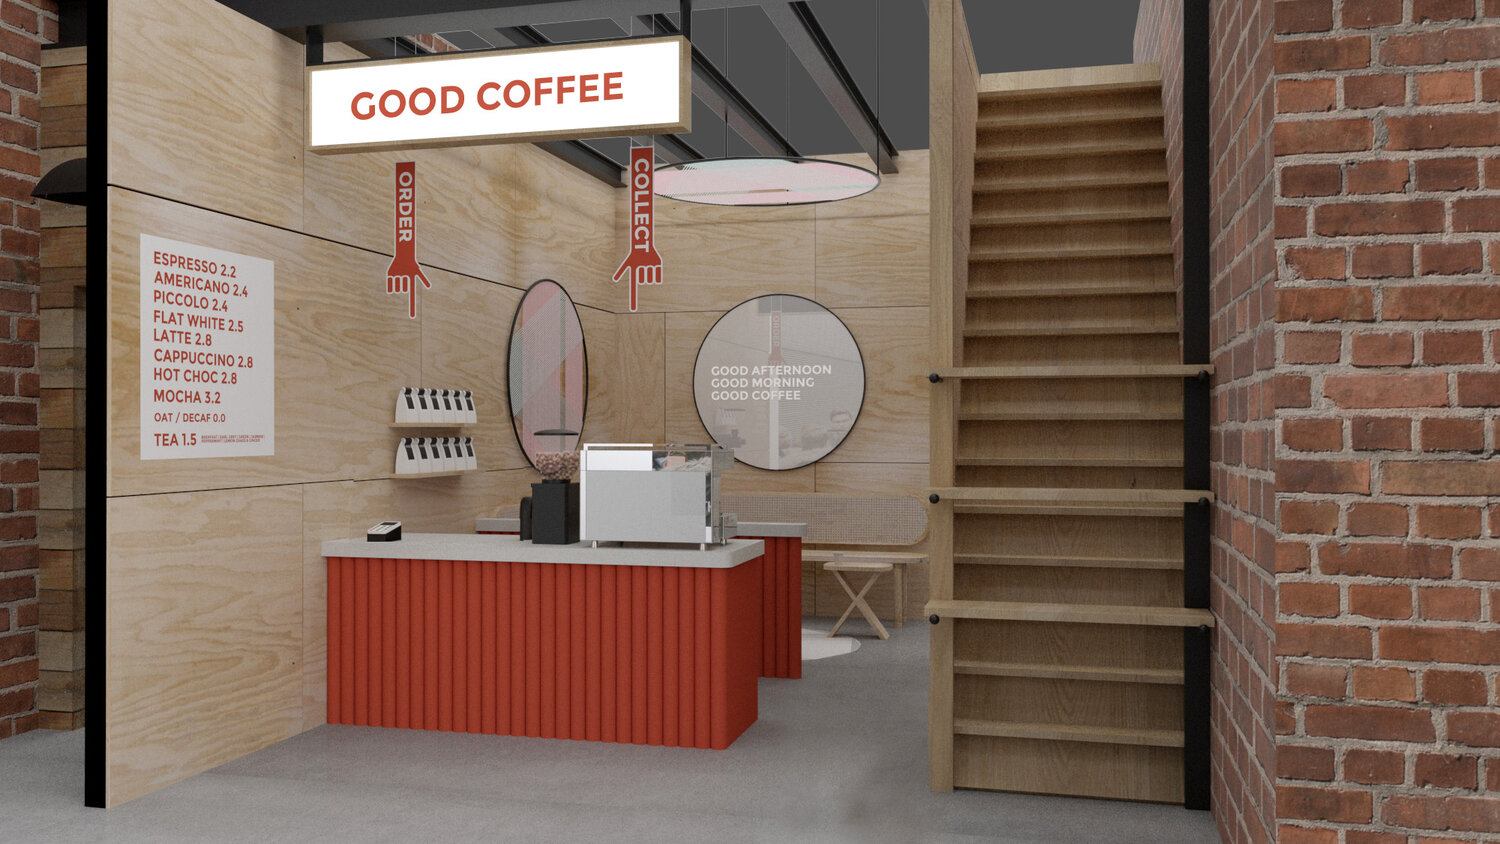 lunarlunar_interior_design_cafe_good_coffee_route 1_maltby_street_counter.jpg